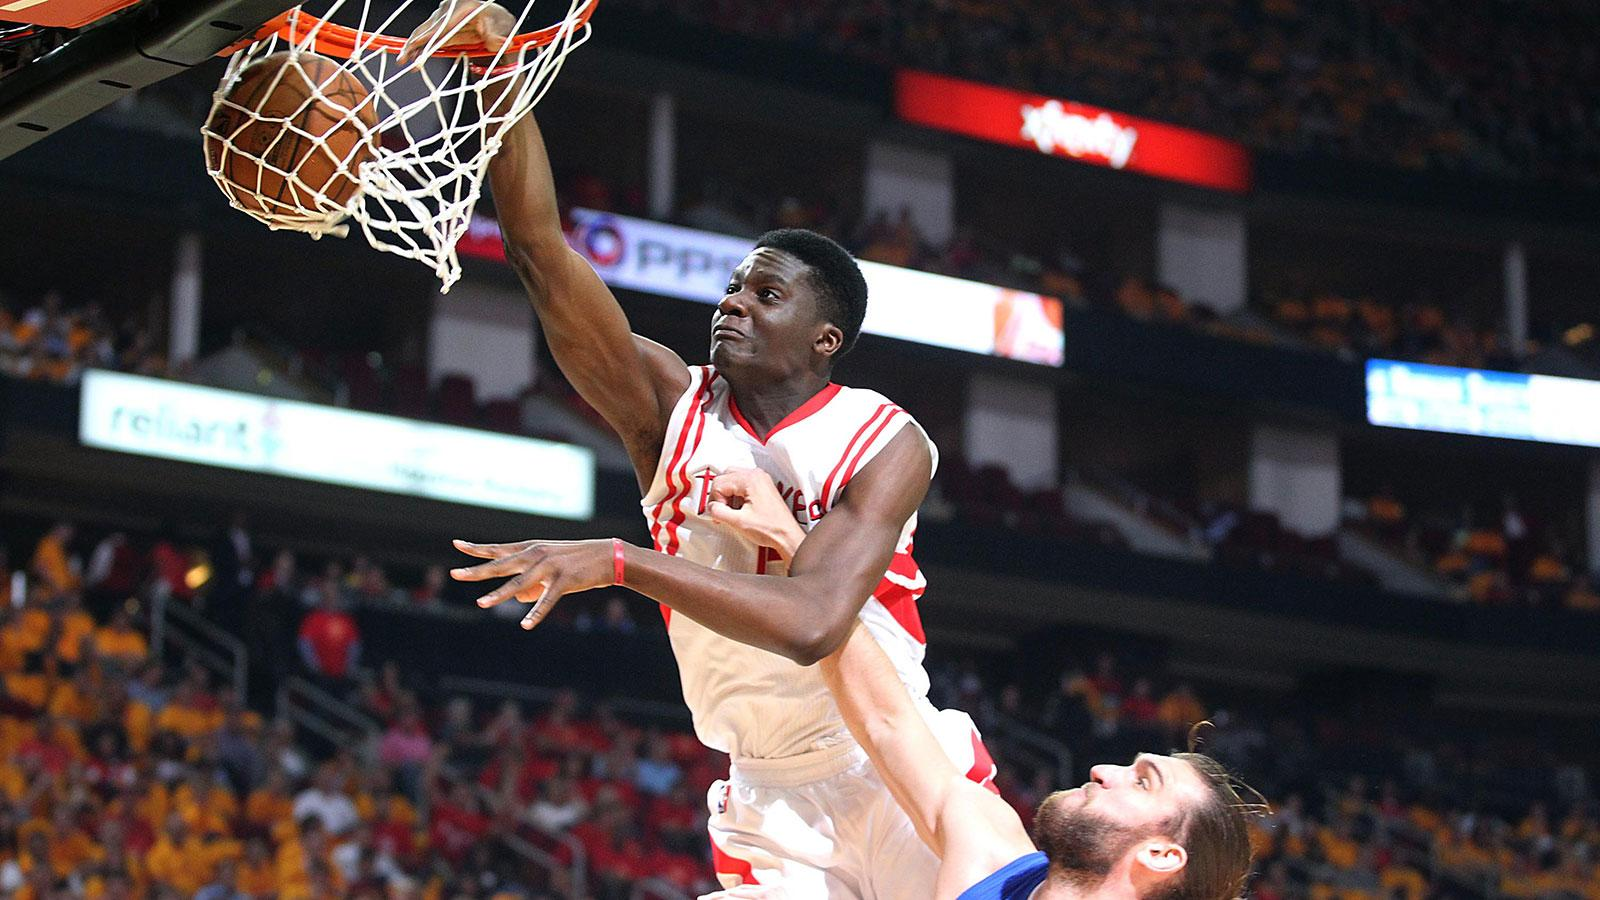 Watch Clint Capela dunk on Spencer Hawes' head | FOX Sports